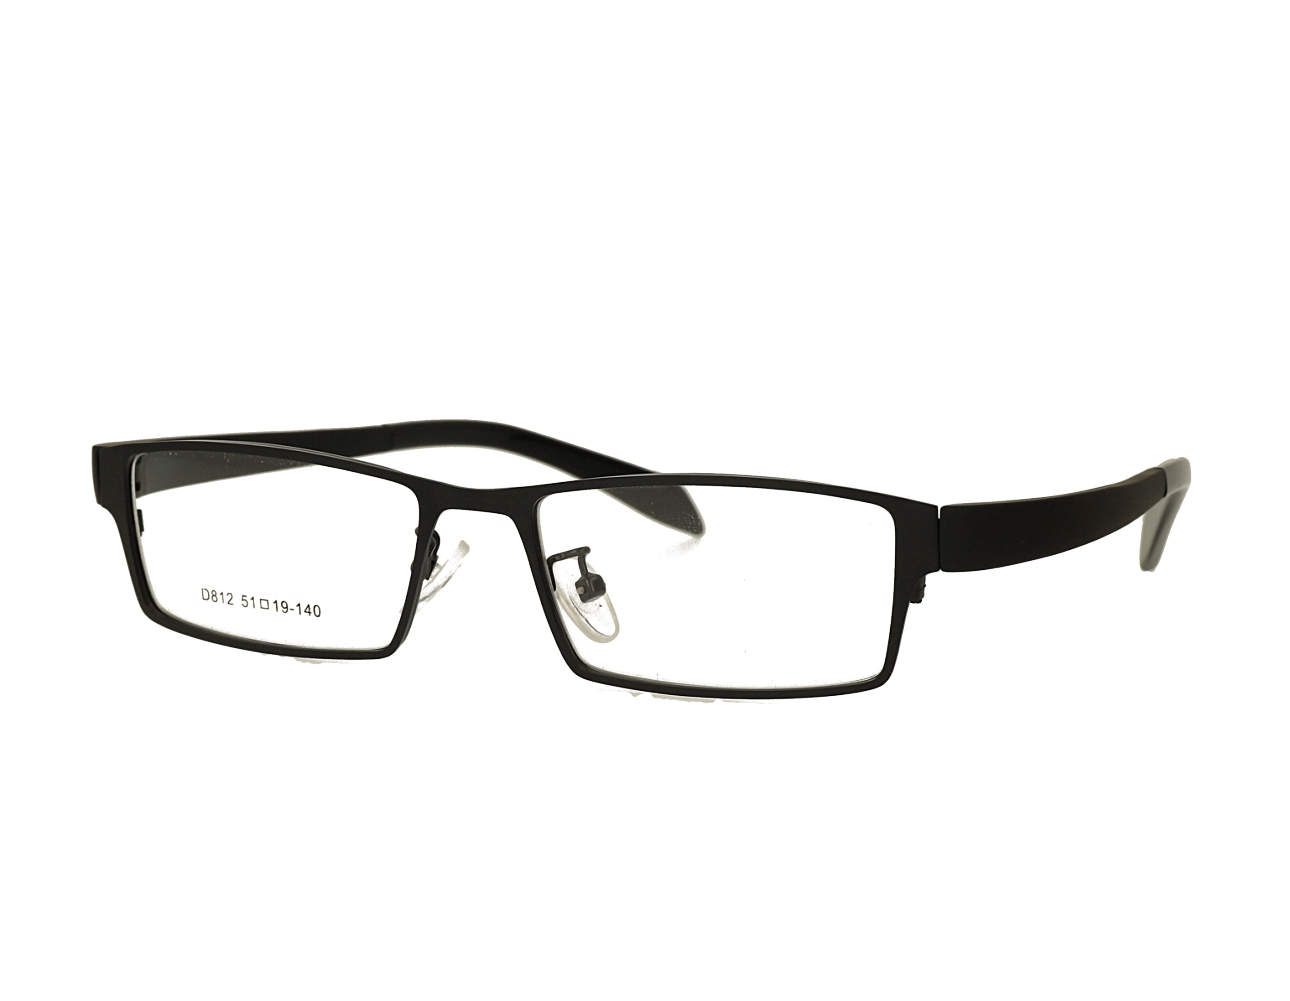 Square Mans designer metal eyewear with TR90 temples